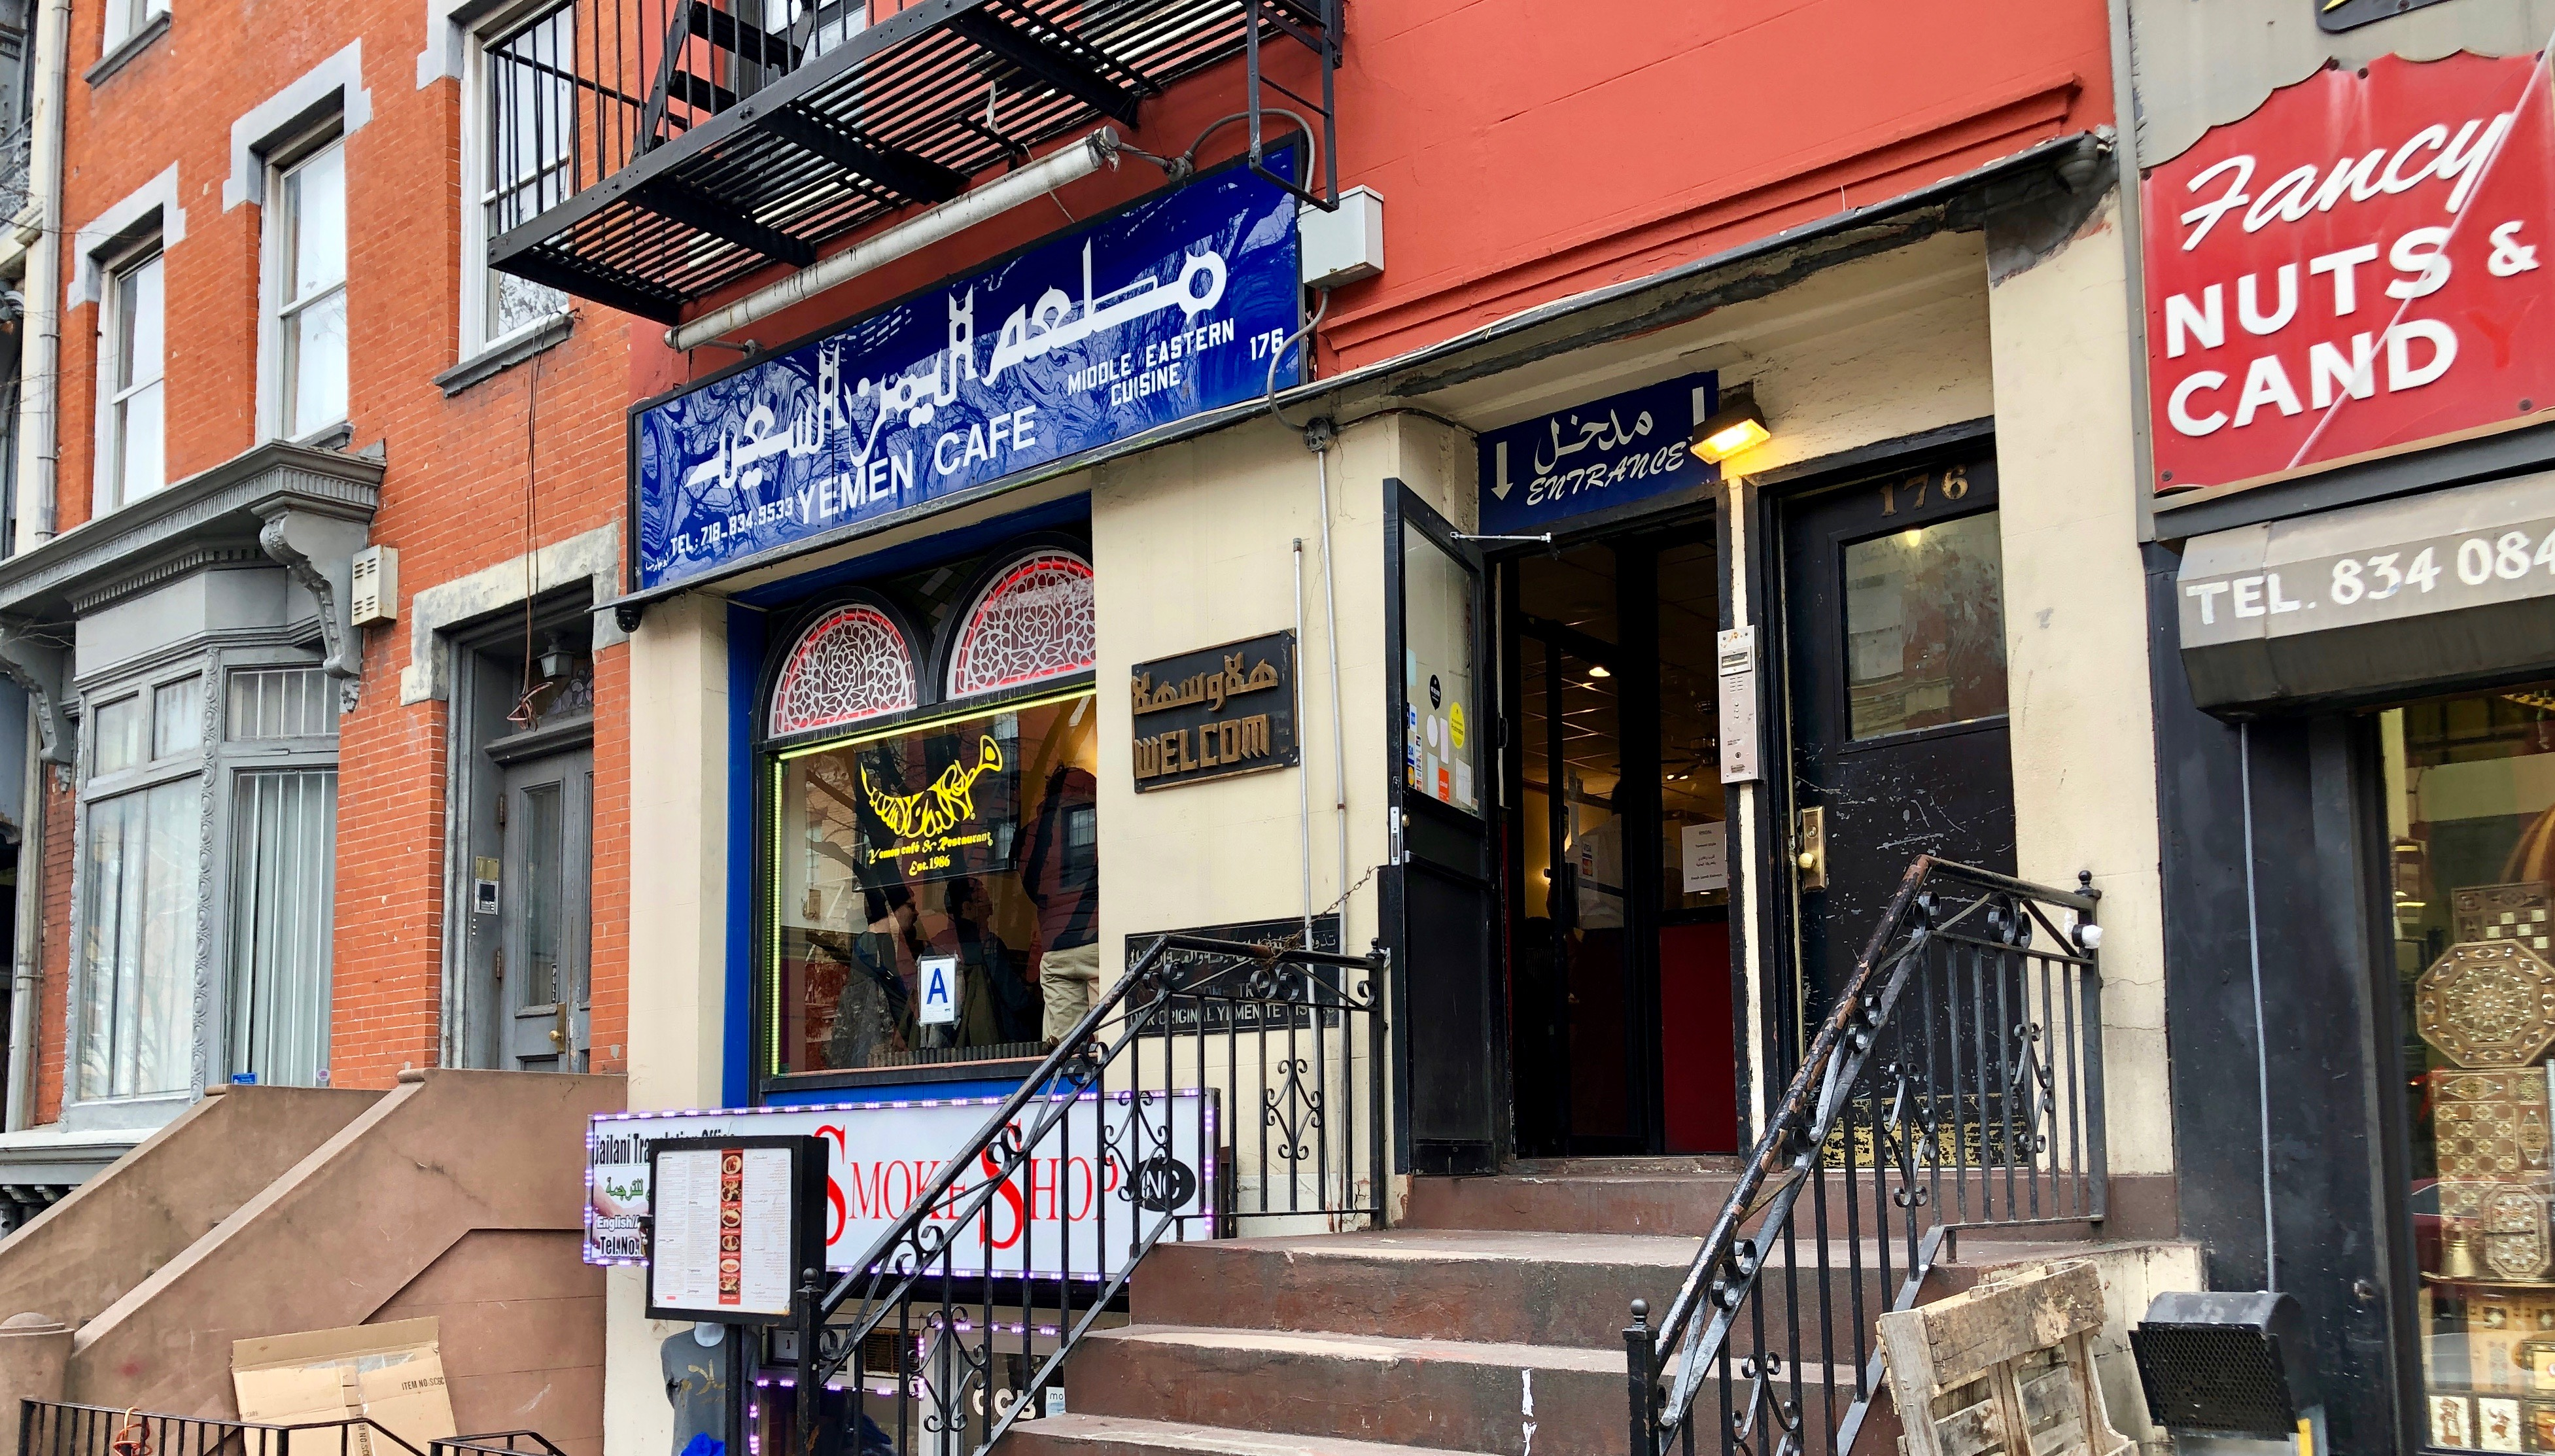 Yemen Cafe in Cobble Hill, Brooklyn